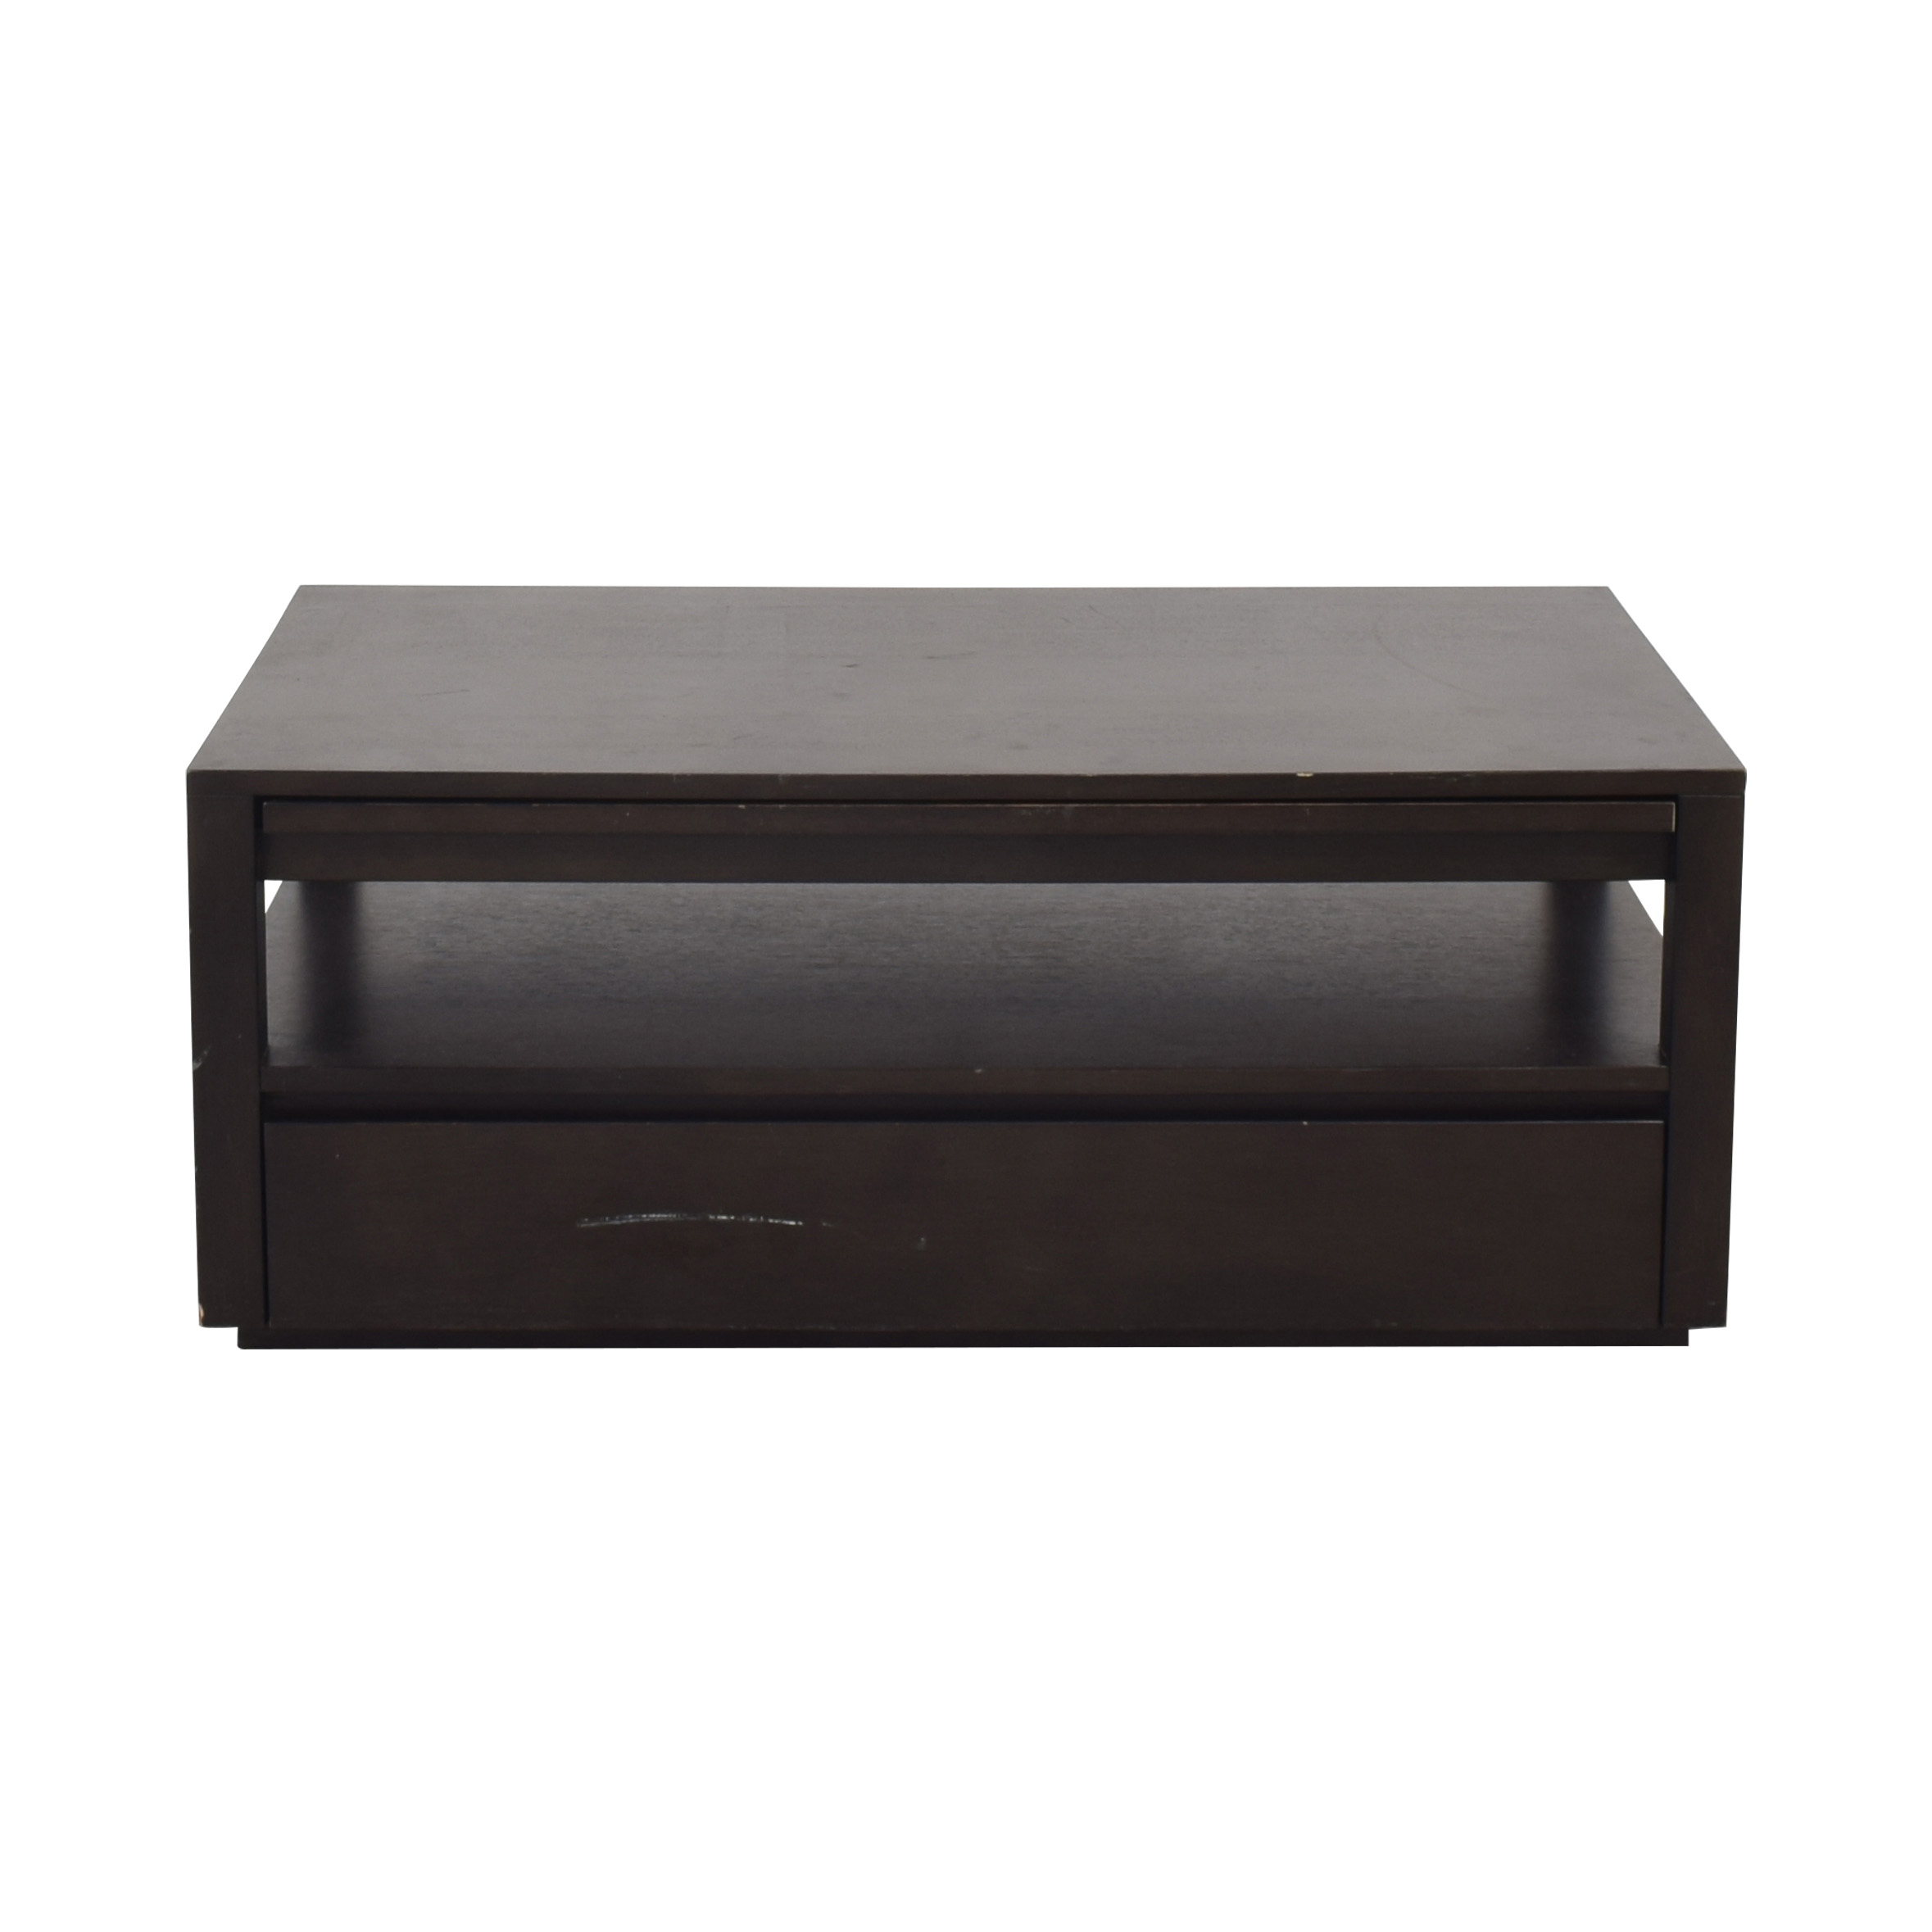 Crate & Barrel Expandable Coffee Table with Storage sale